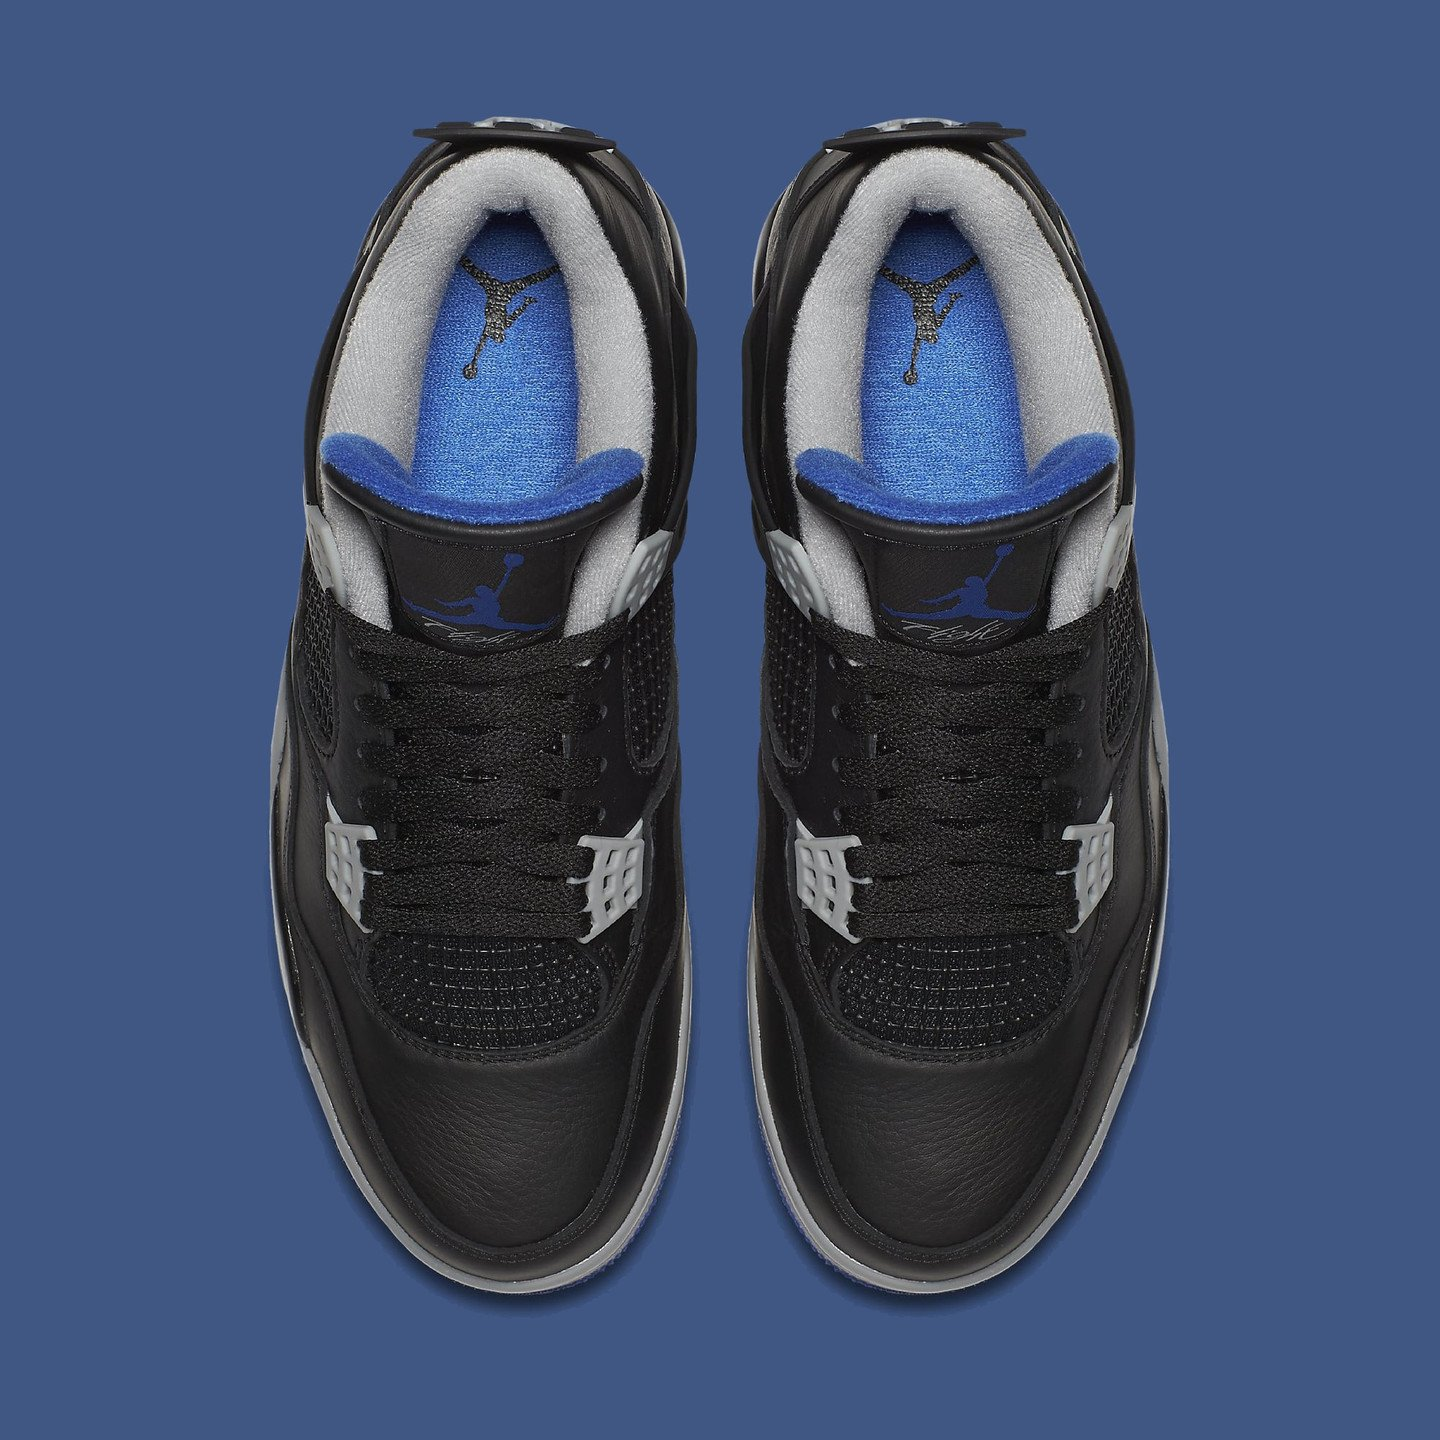 Jordan Air Jordan 4 Retro Black / Game Royal / Matte Silver  308497-006-44